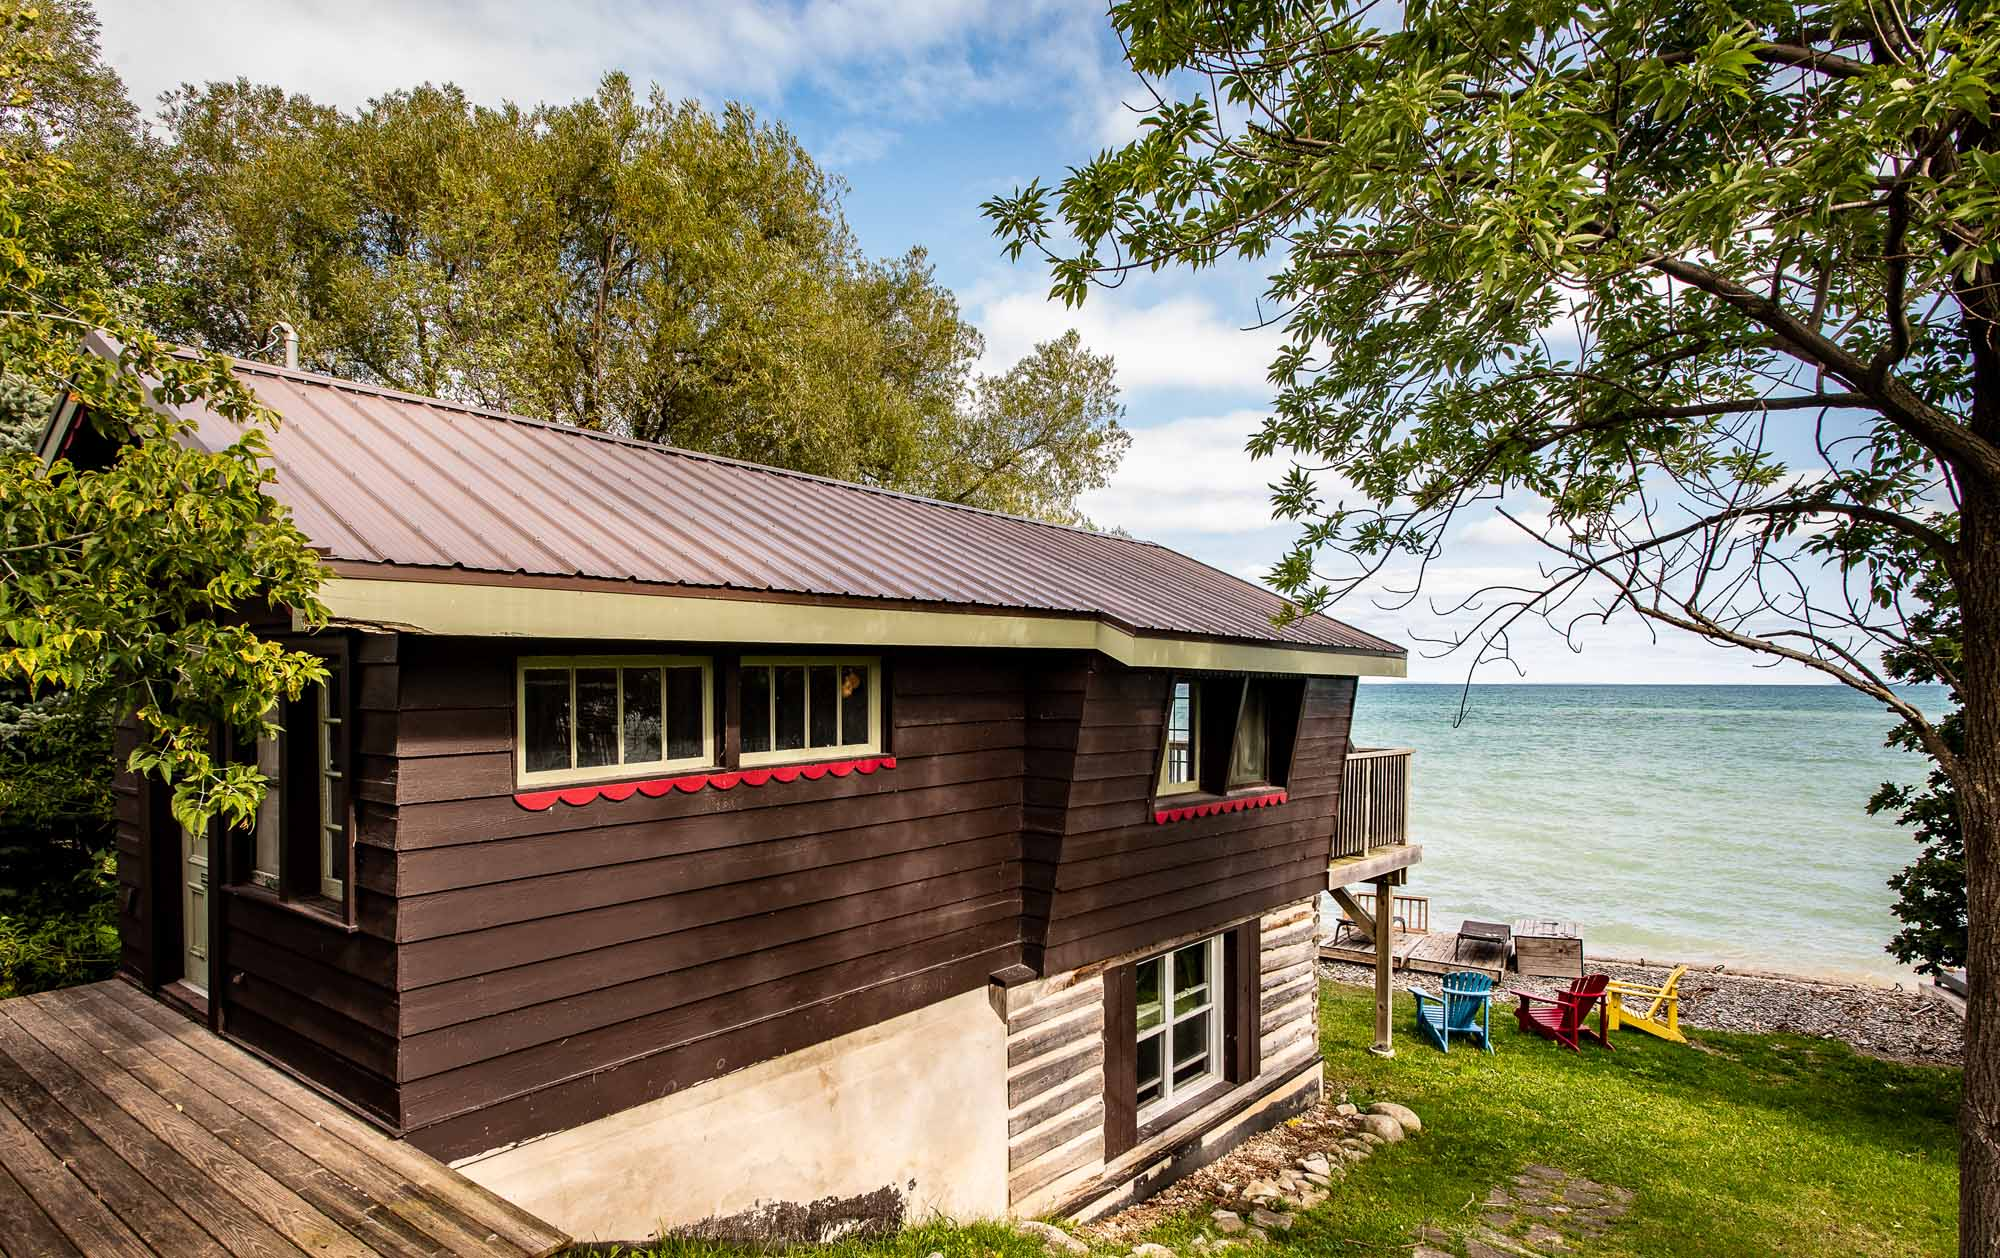 The-Chalet-and-the-Beach-House-Ontarios-Ski-Heritage-in-Two-Buildings-photo-by-Kristin-Schnelten-beach-house-exterior